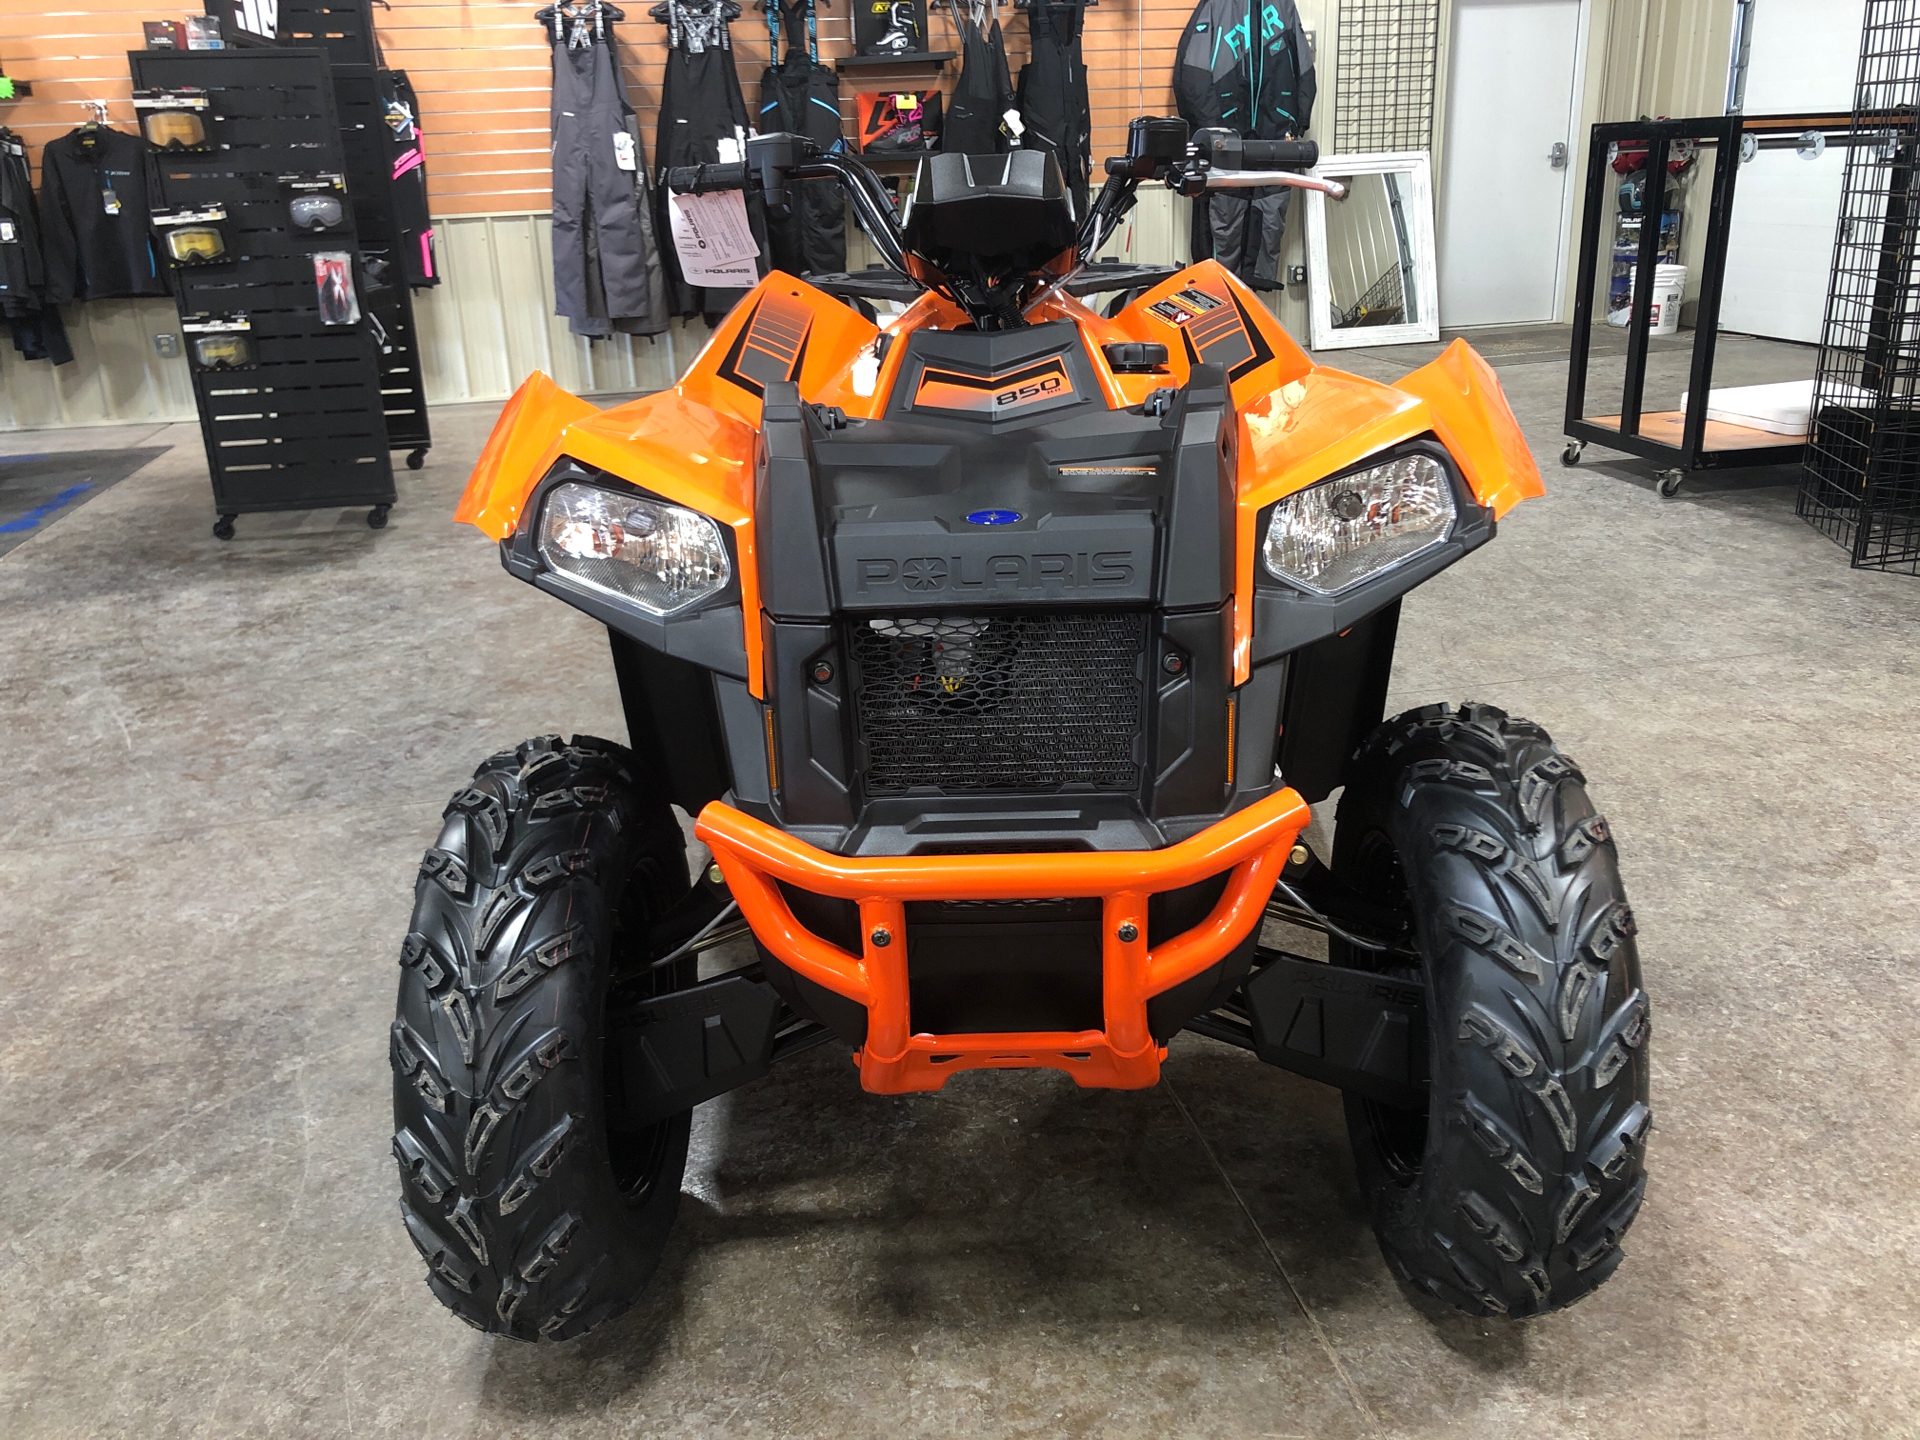 2021 Polaris Scrambler 850 in Elkhorn, Wisconsin - Photo 2